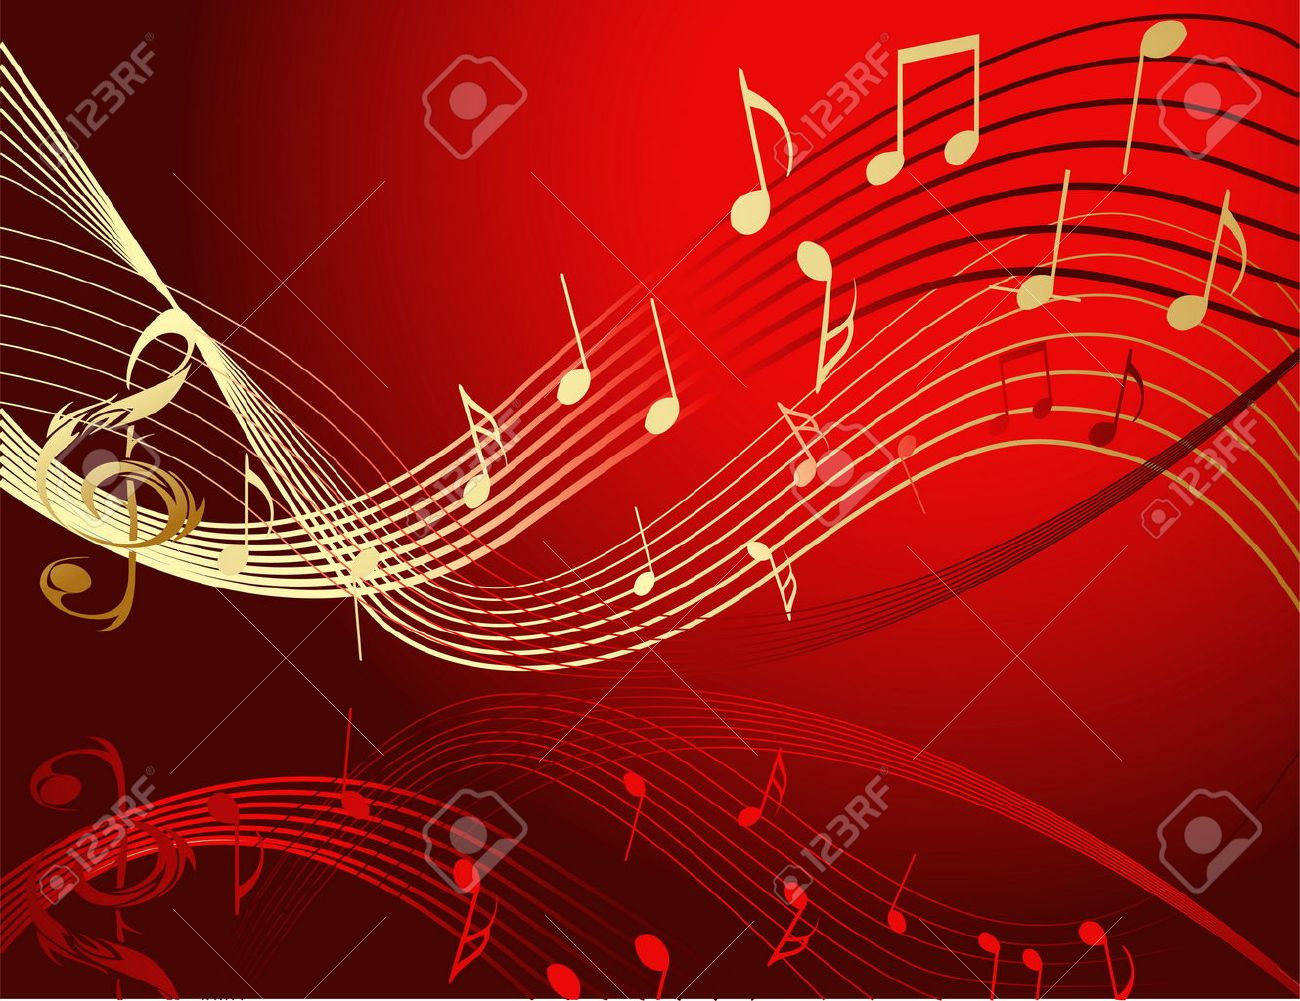 Background image music - Background With Music Notes Stock Vector 8594913